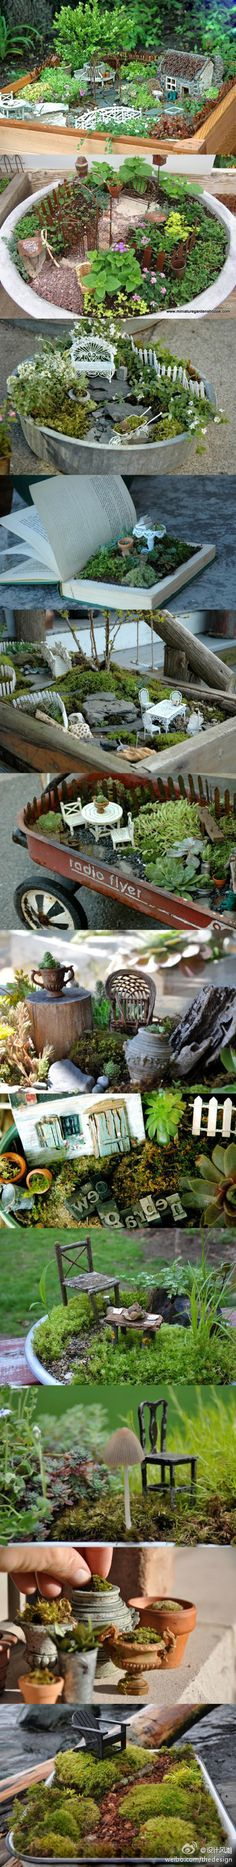 Miniature gardens. I especially like the one in the book.